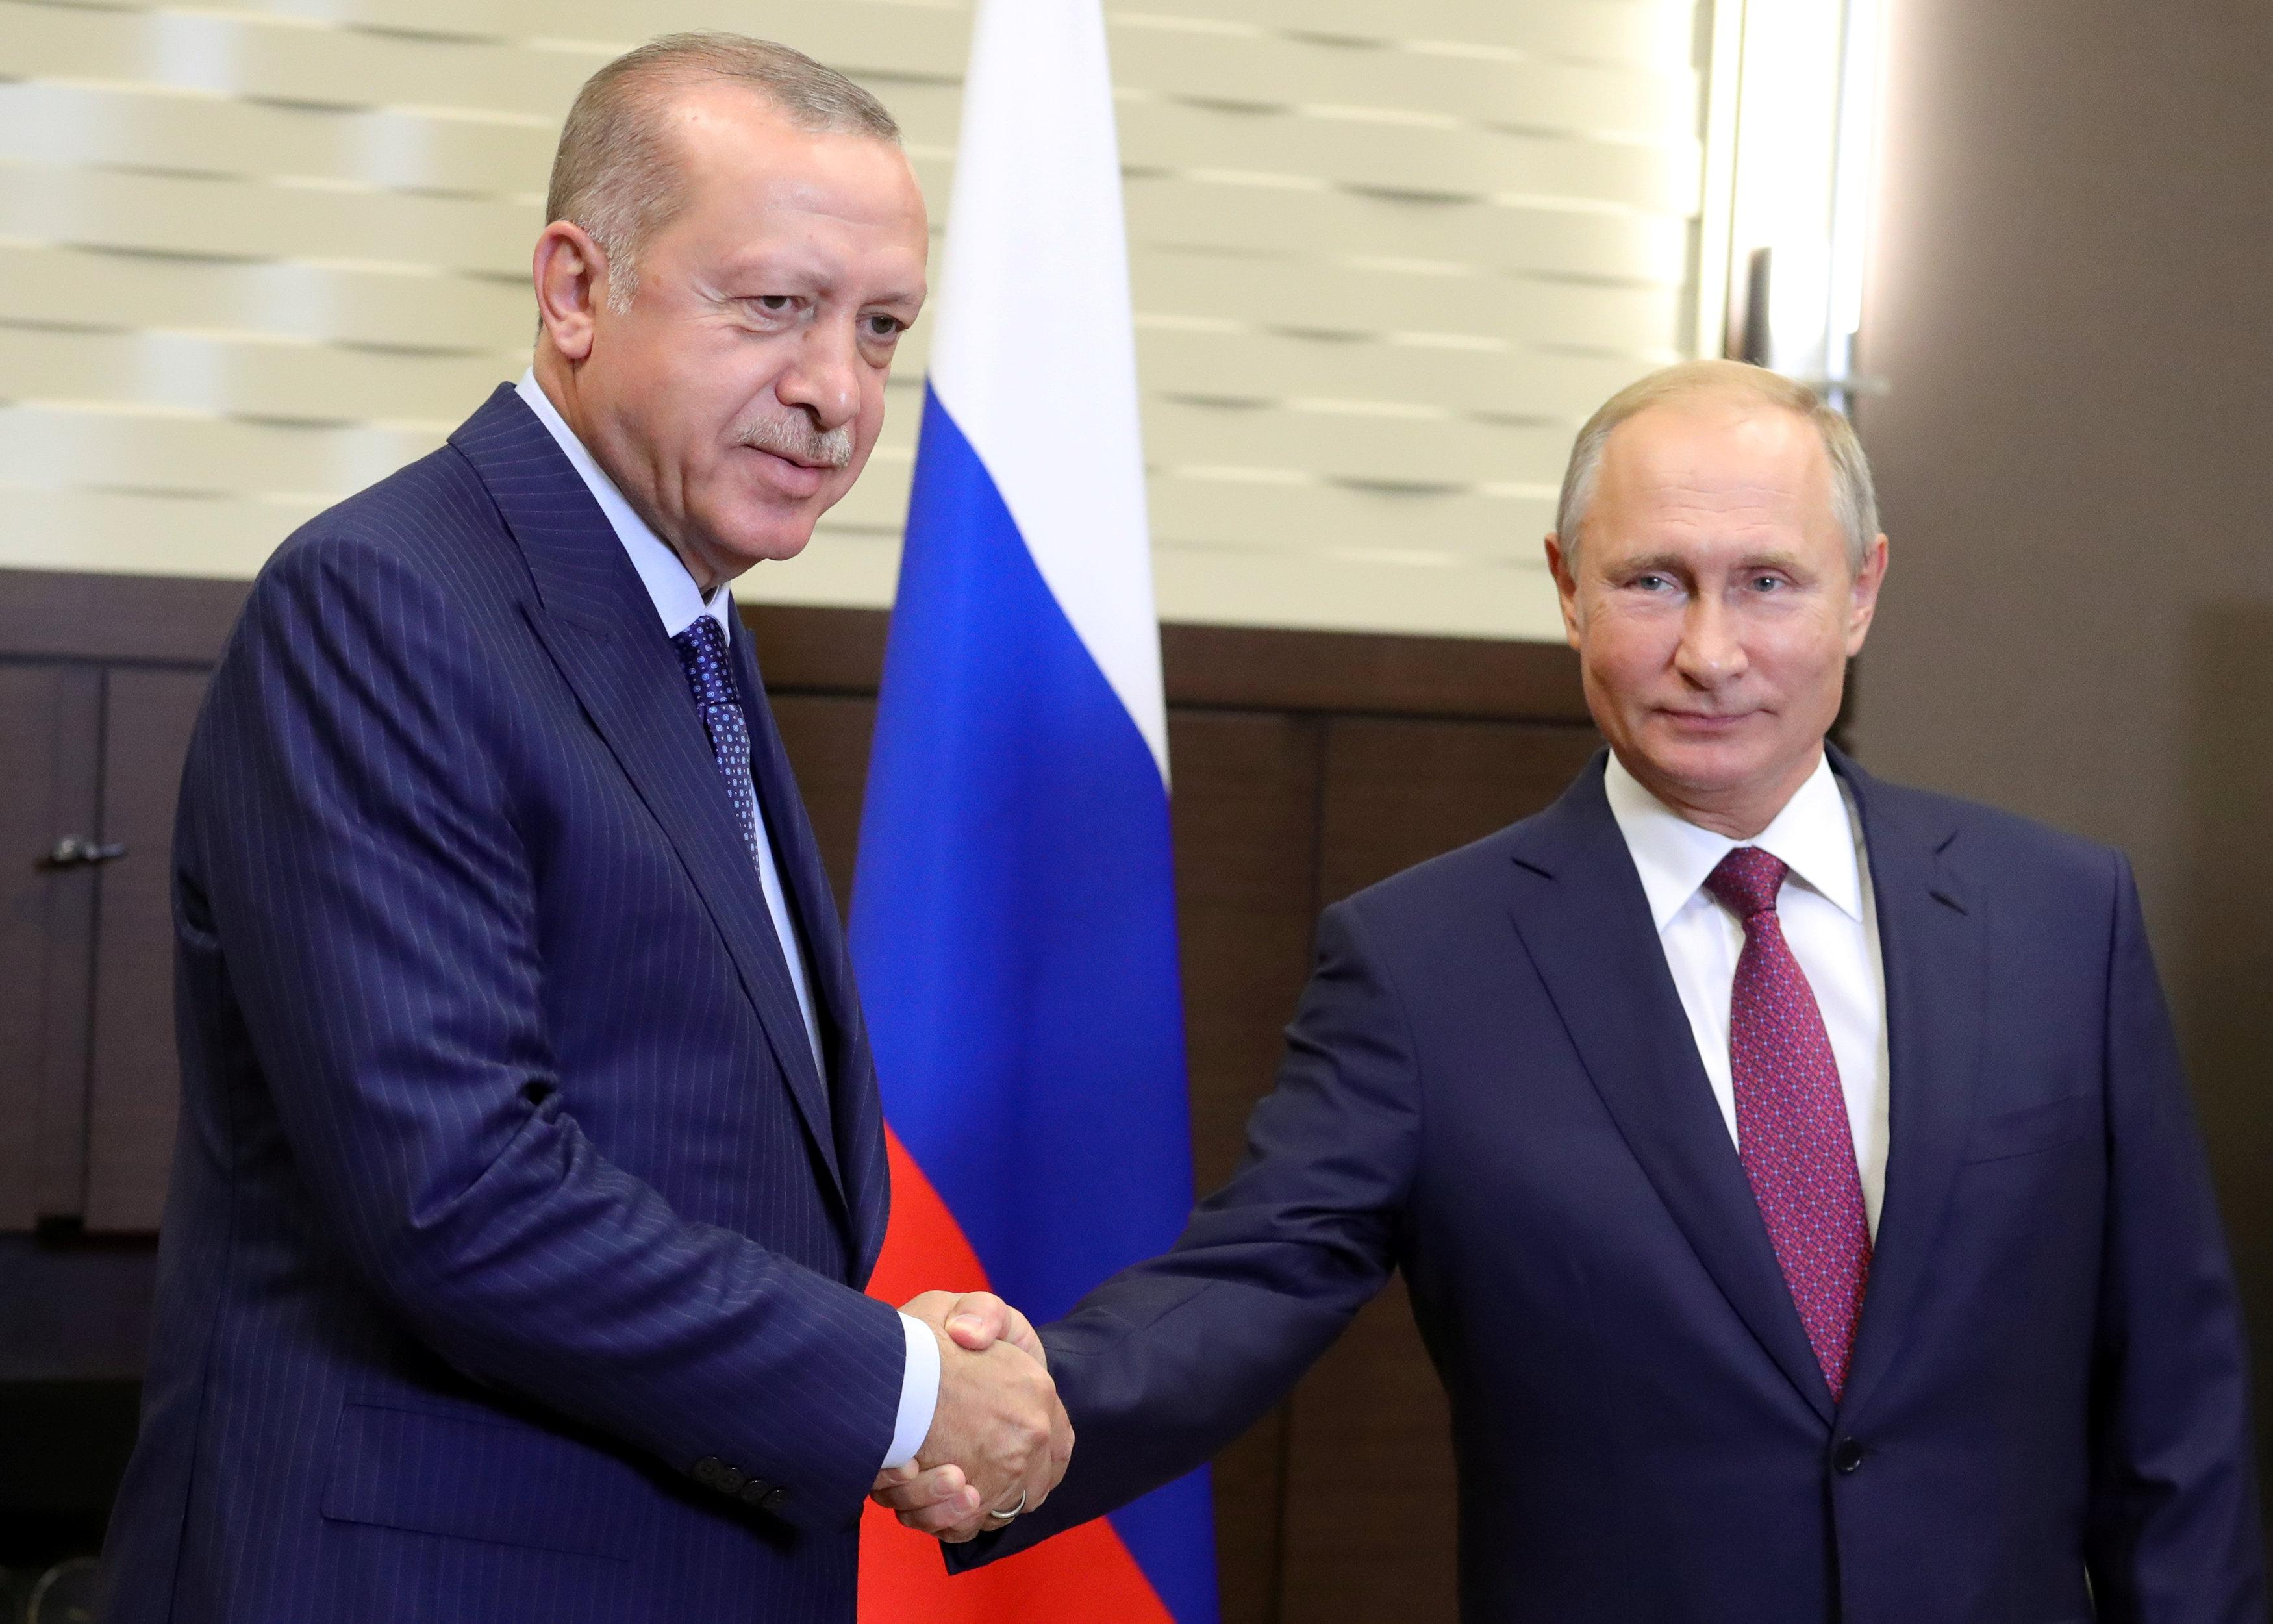 Russian President Vladimir Putin (R) shakes hands with his Turkish counterpart Tayyip Erdogan during a meeting in Sochi, Russia September 17, 2018. Sputnik/Mikhail Klimentyev/Kremlin via